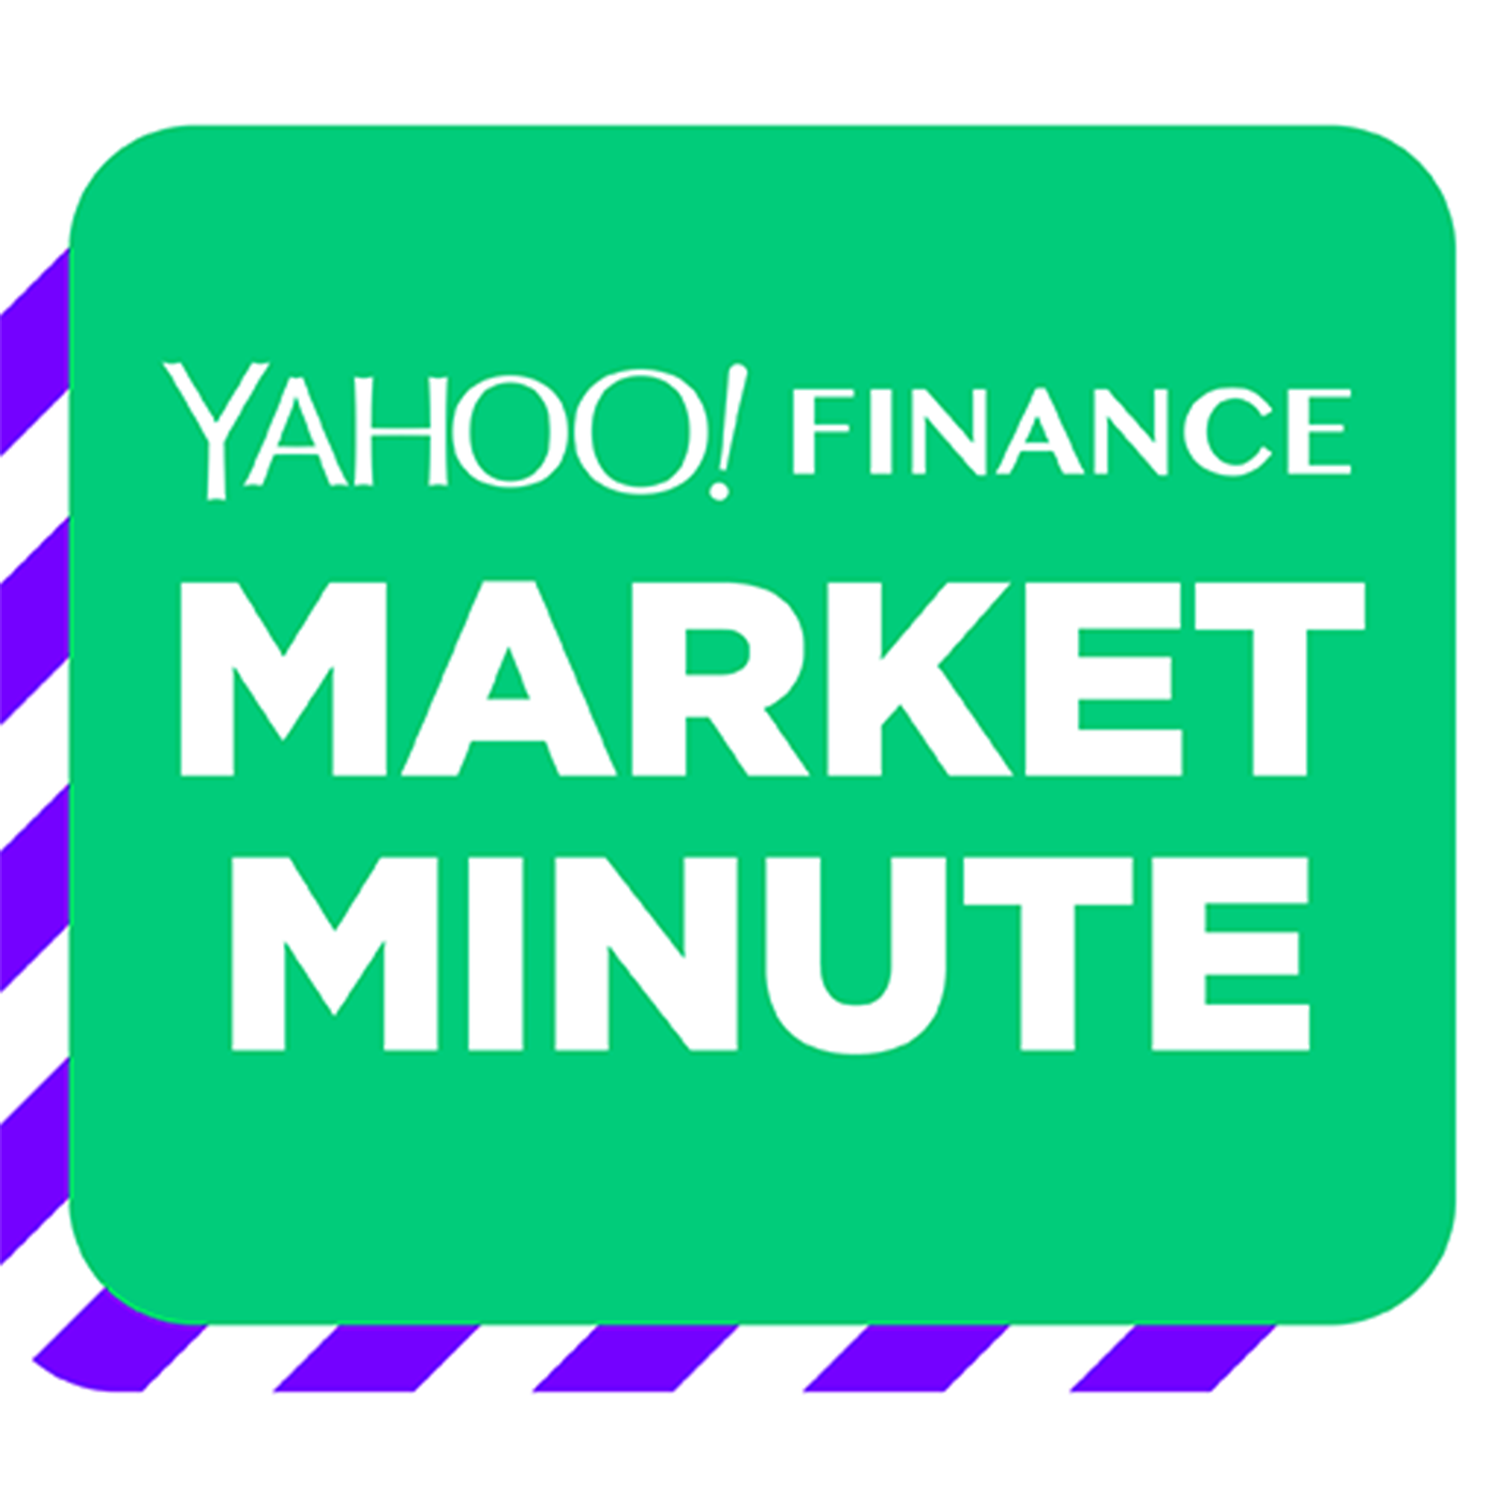 10 AM MARKET MINUTE